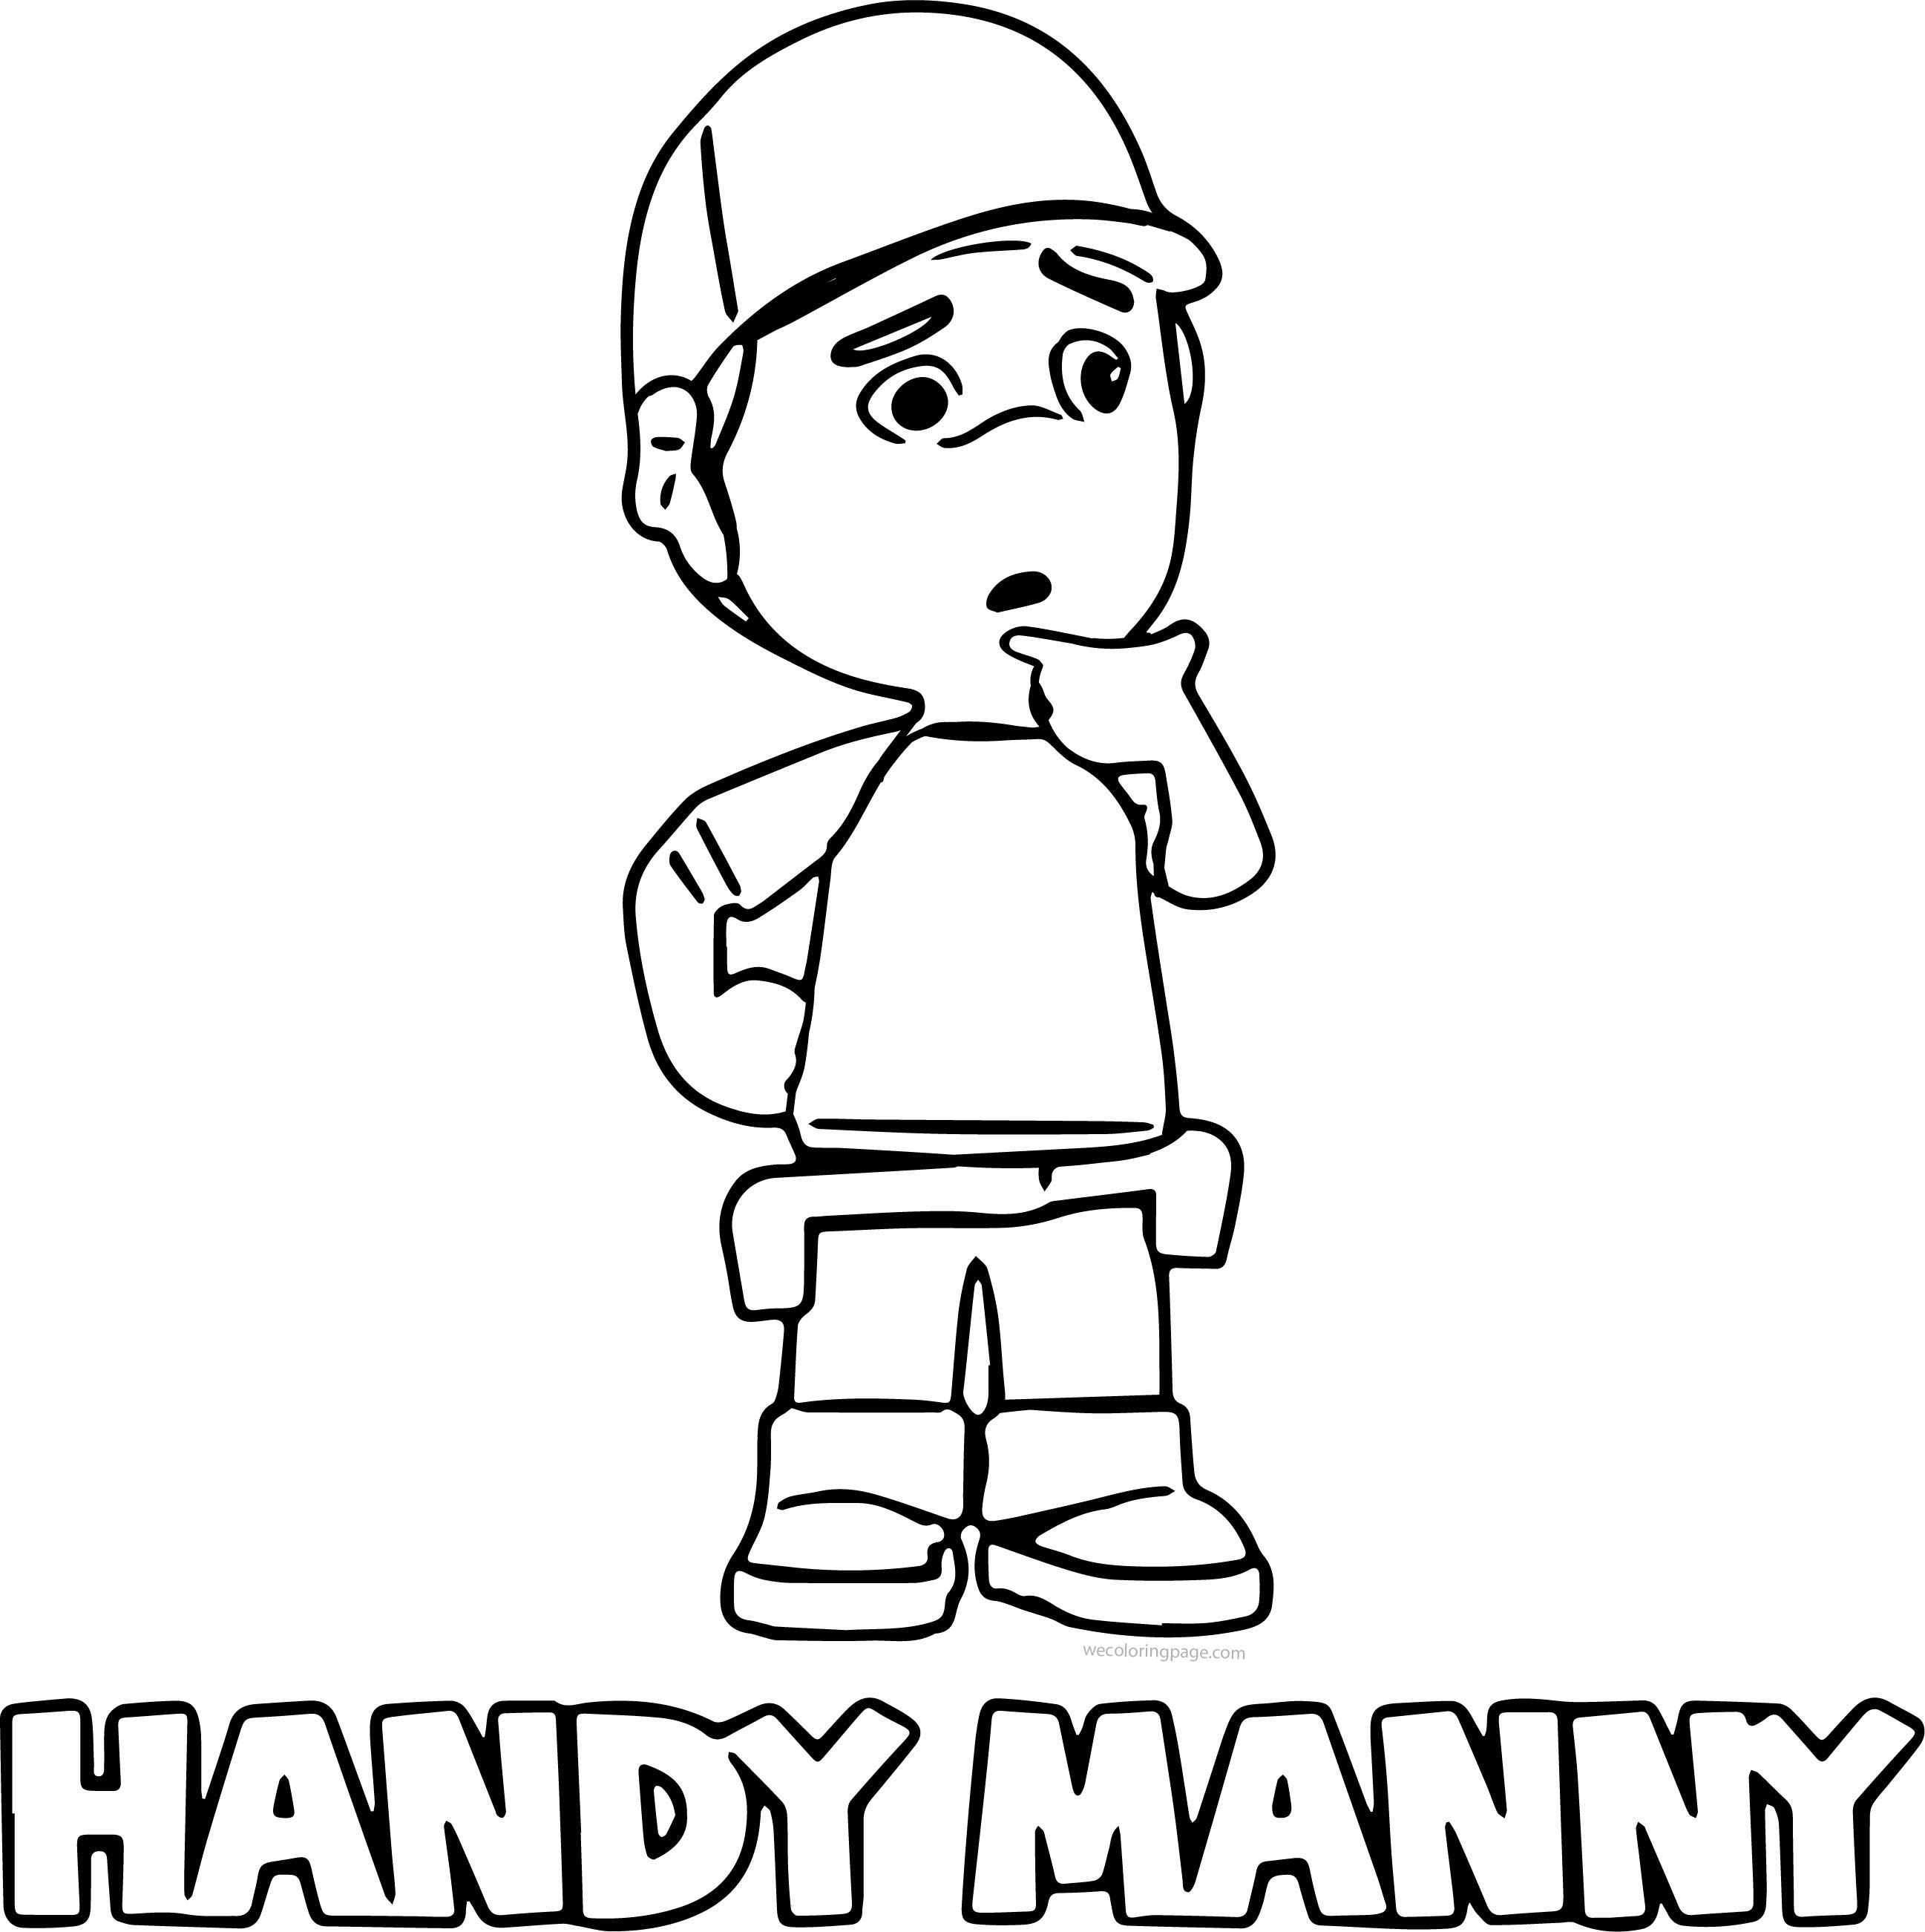 Awesome Thinking Handy Manny Coloring Page Handy Manny Coloring